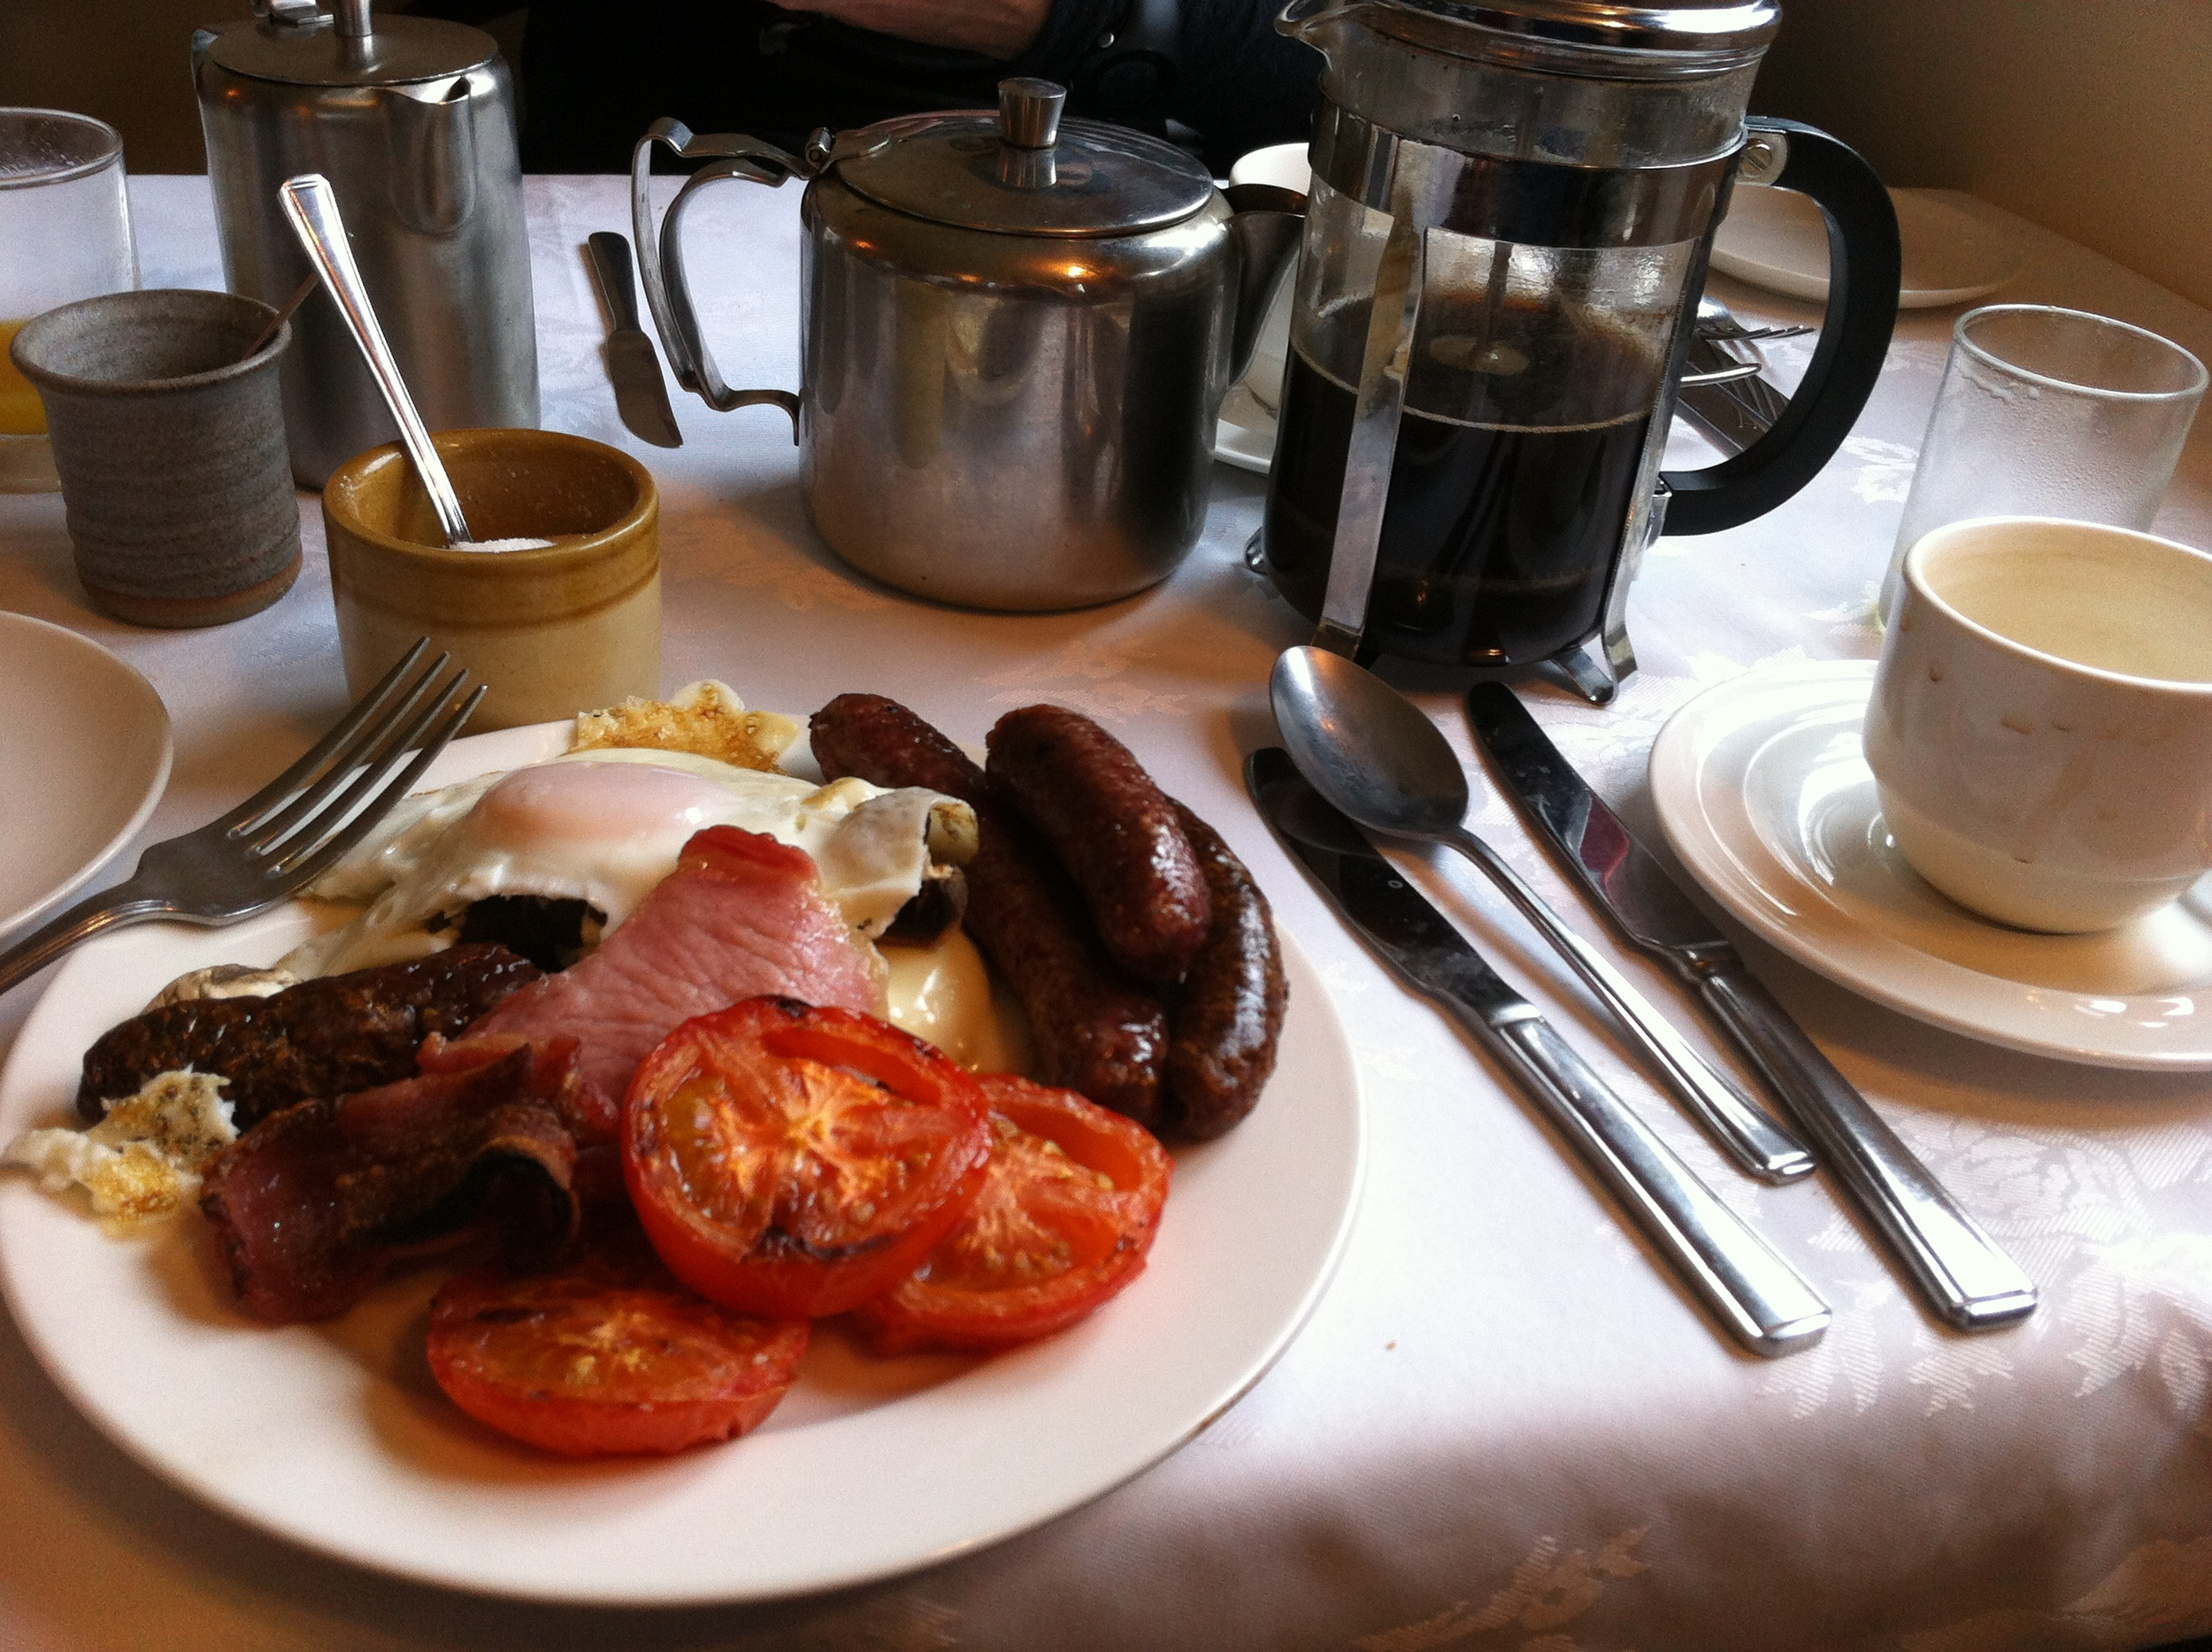 scotland, breakfast, coffee, full english, foodie, wholesome, cycling holidays, bike tour, road cycling, bike trails,